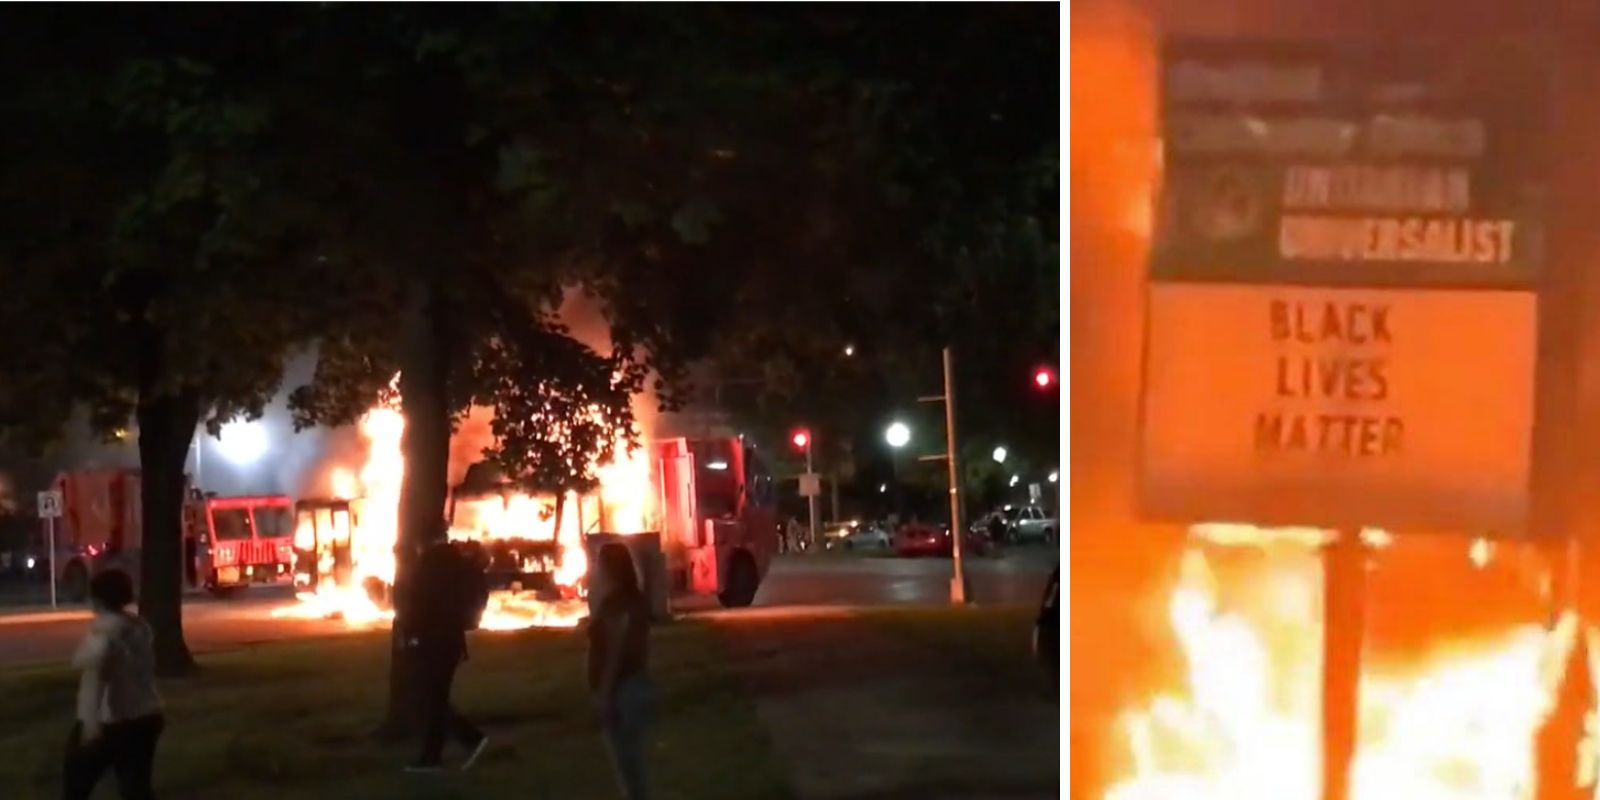 Police-involved shooting in Kenosha, Wisconsin leads to riots, arson, assaults on police